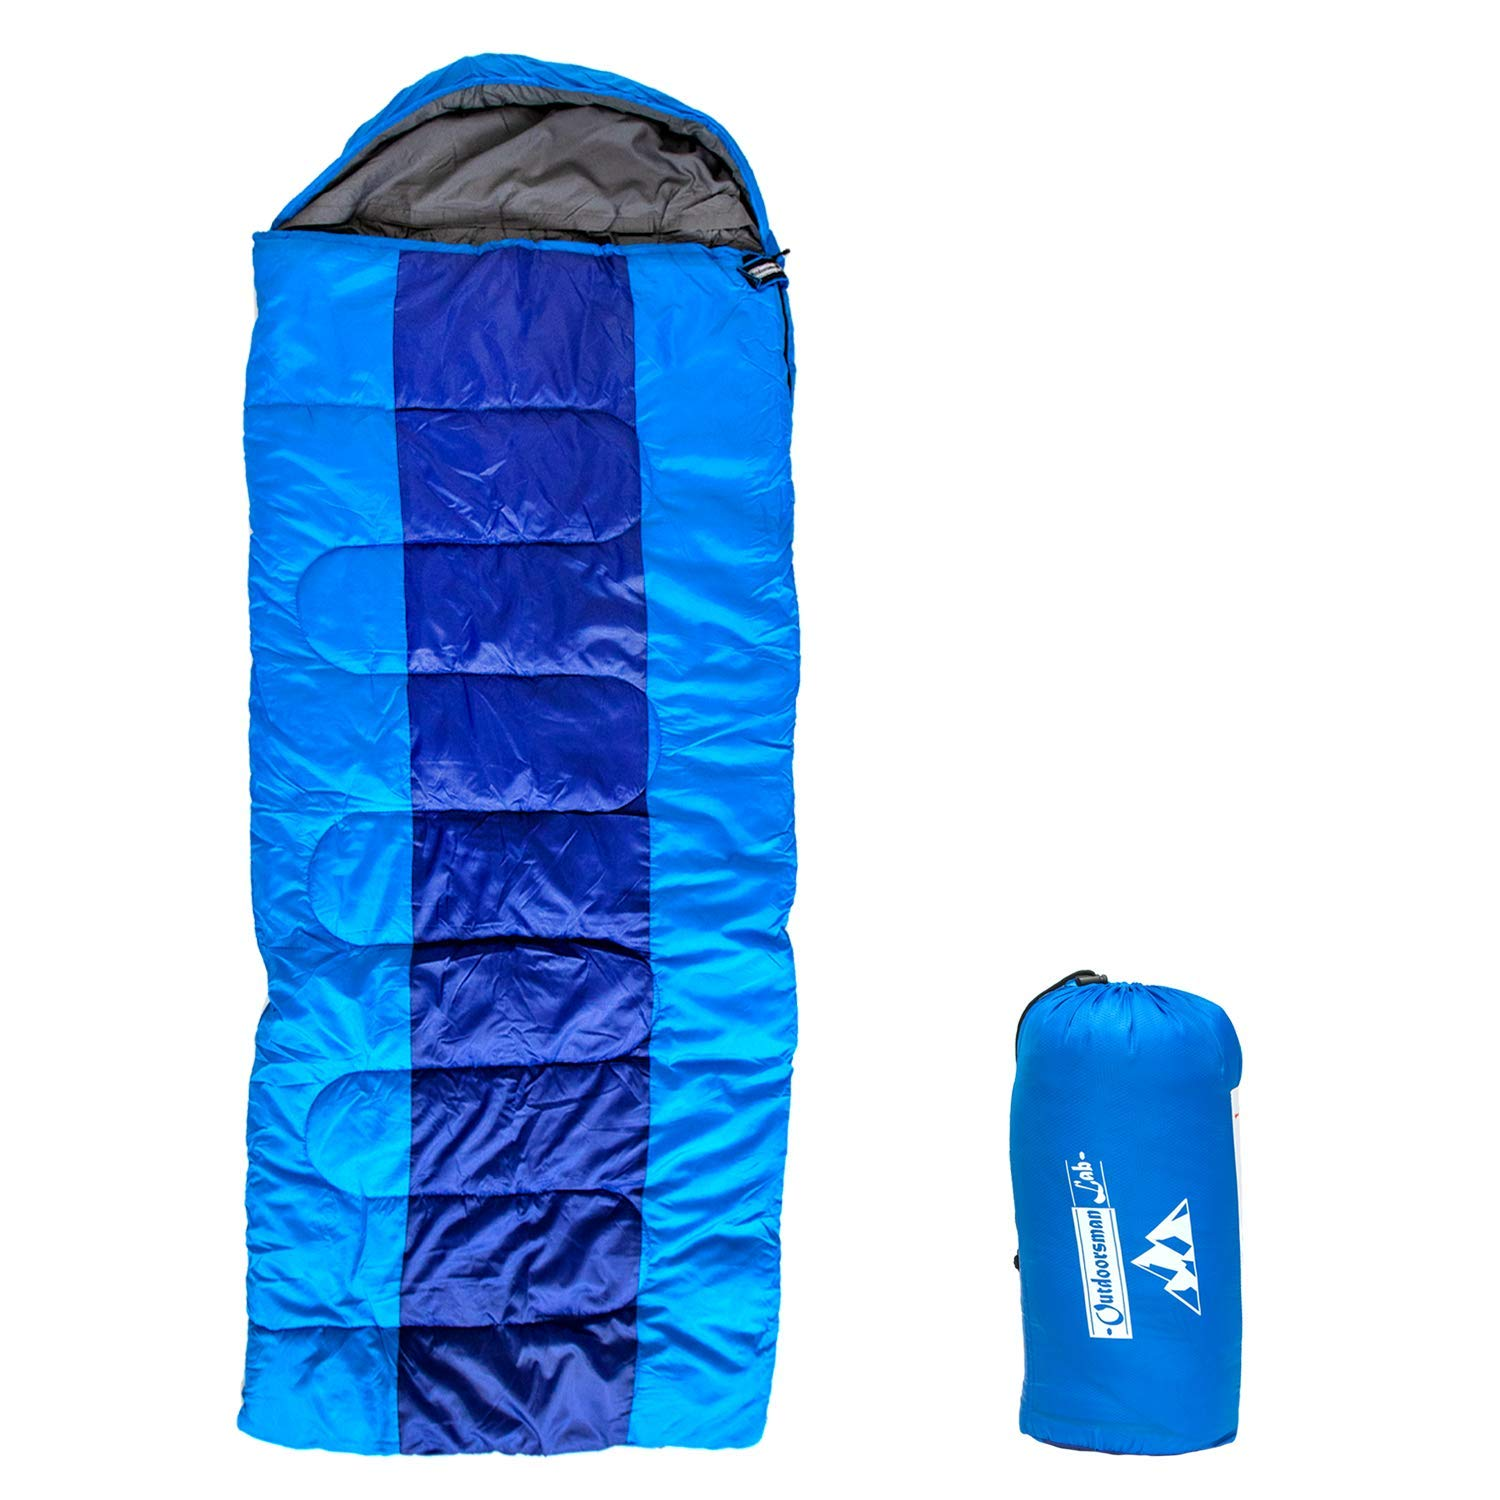 Outdoorsman Lab Sleeping Bag Lightweight Backpacking Camping Sleeping Bag for Adults Kids 3 Season, Durable Ripstop Nylon, Tear Water-Resistant Shell Includes Compression Sack